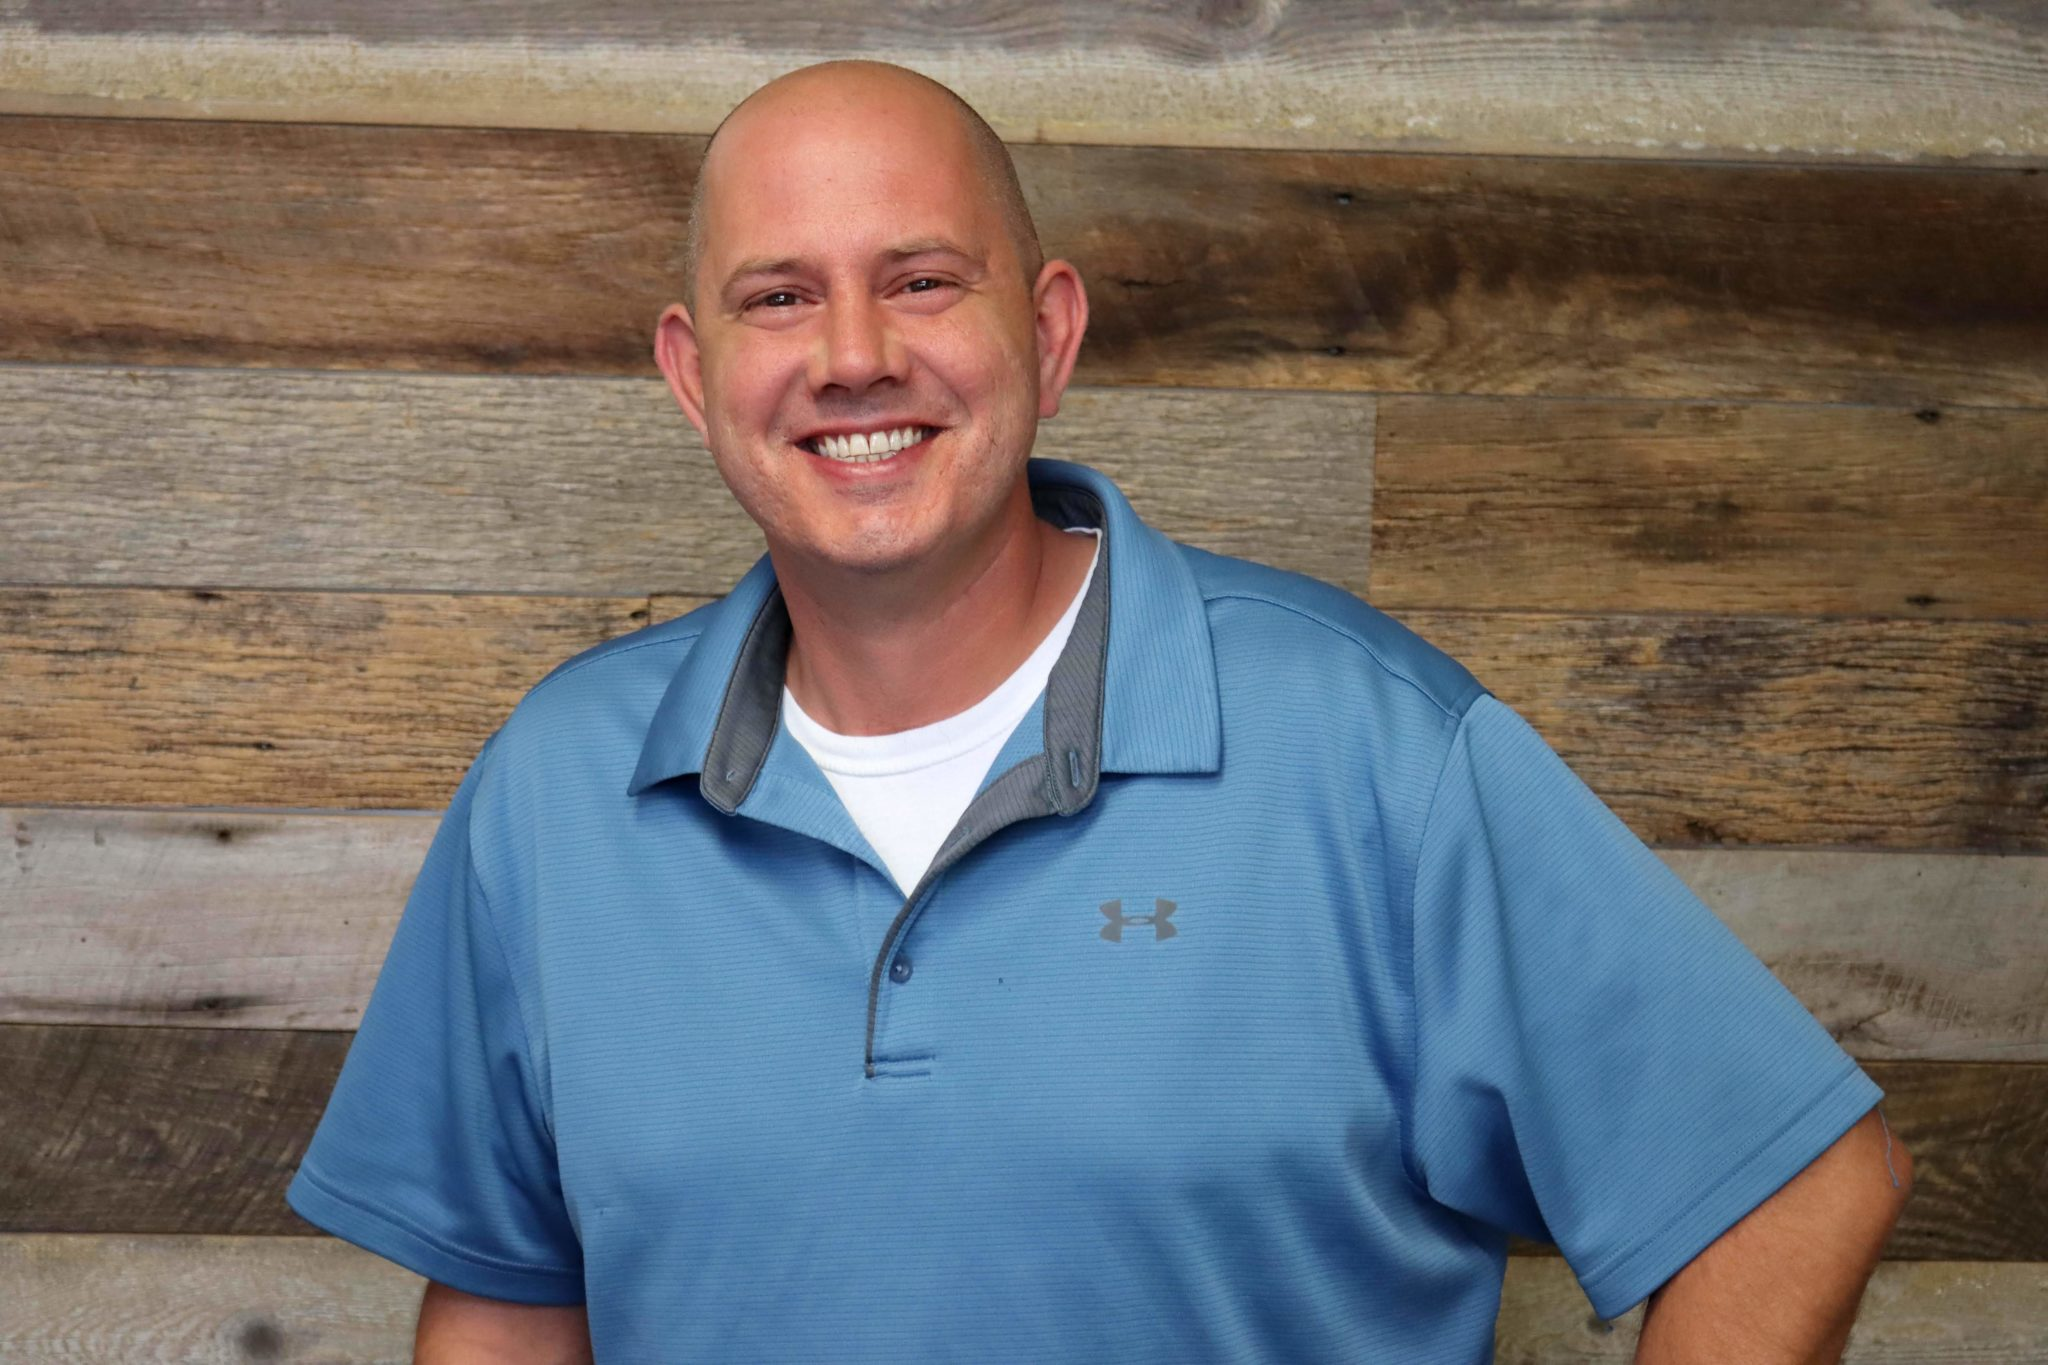 Chad Truax<br><h6>Senior Project Manager</h6><br>